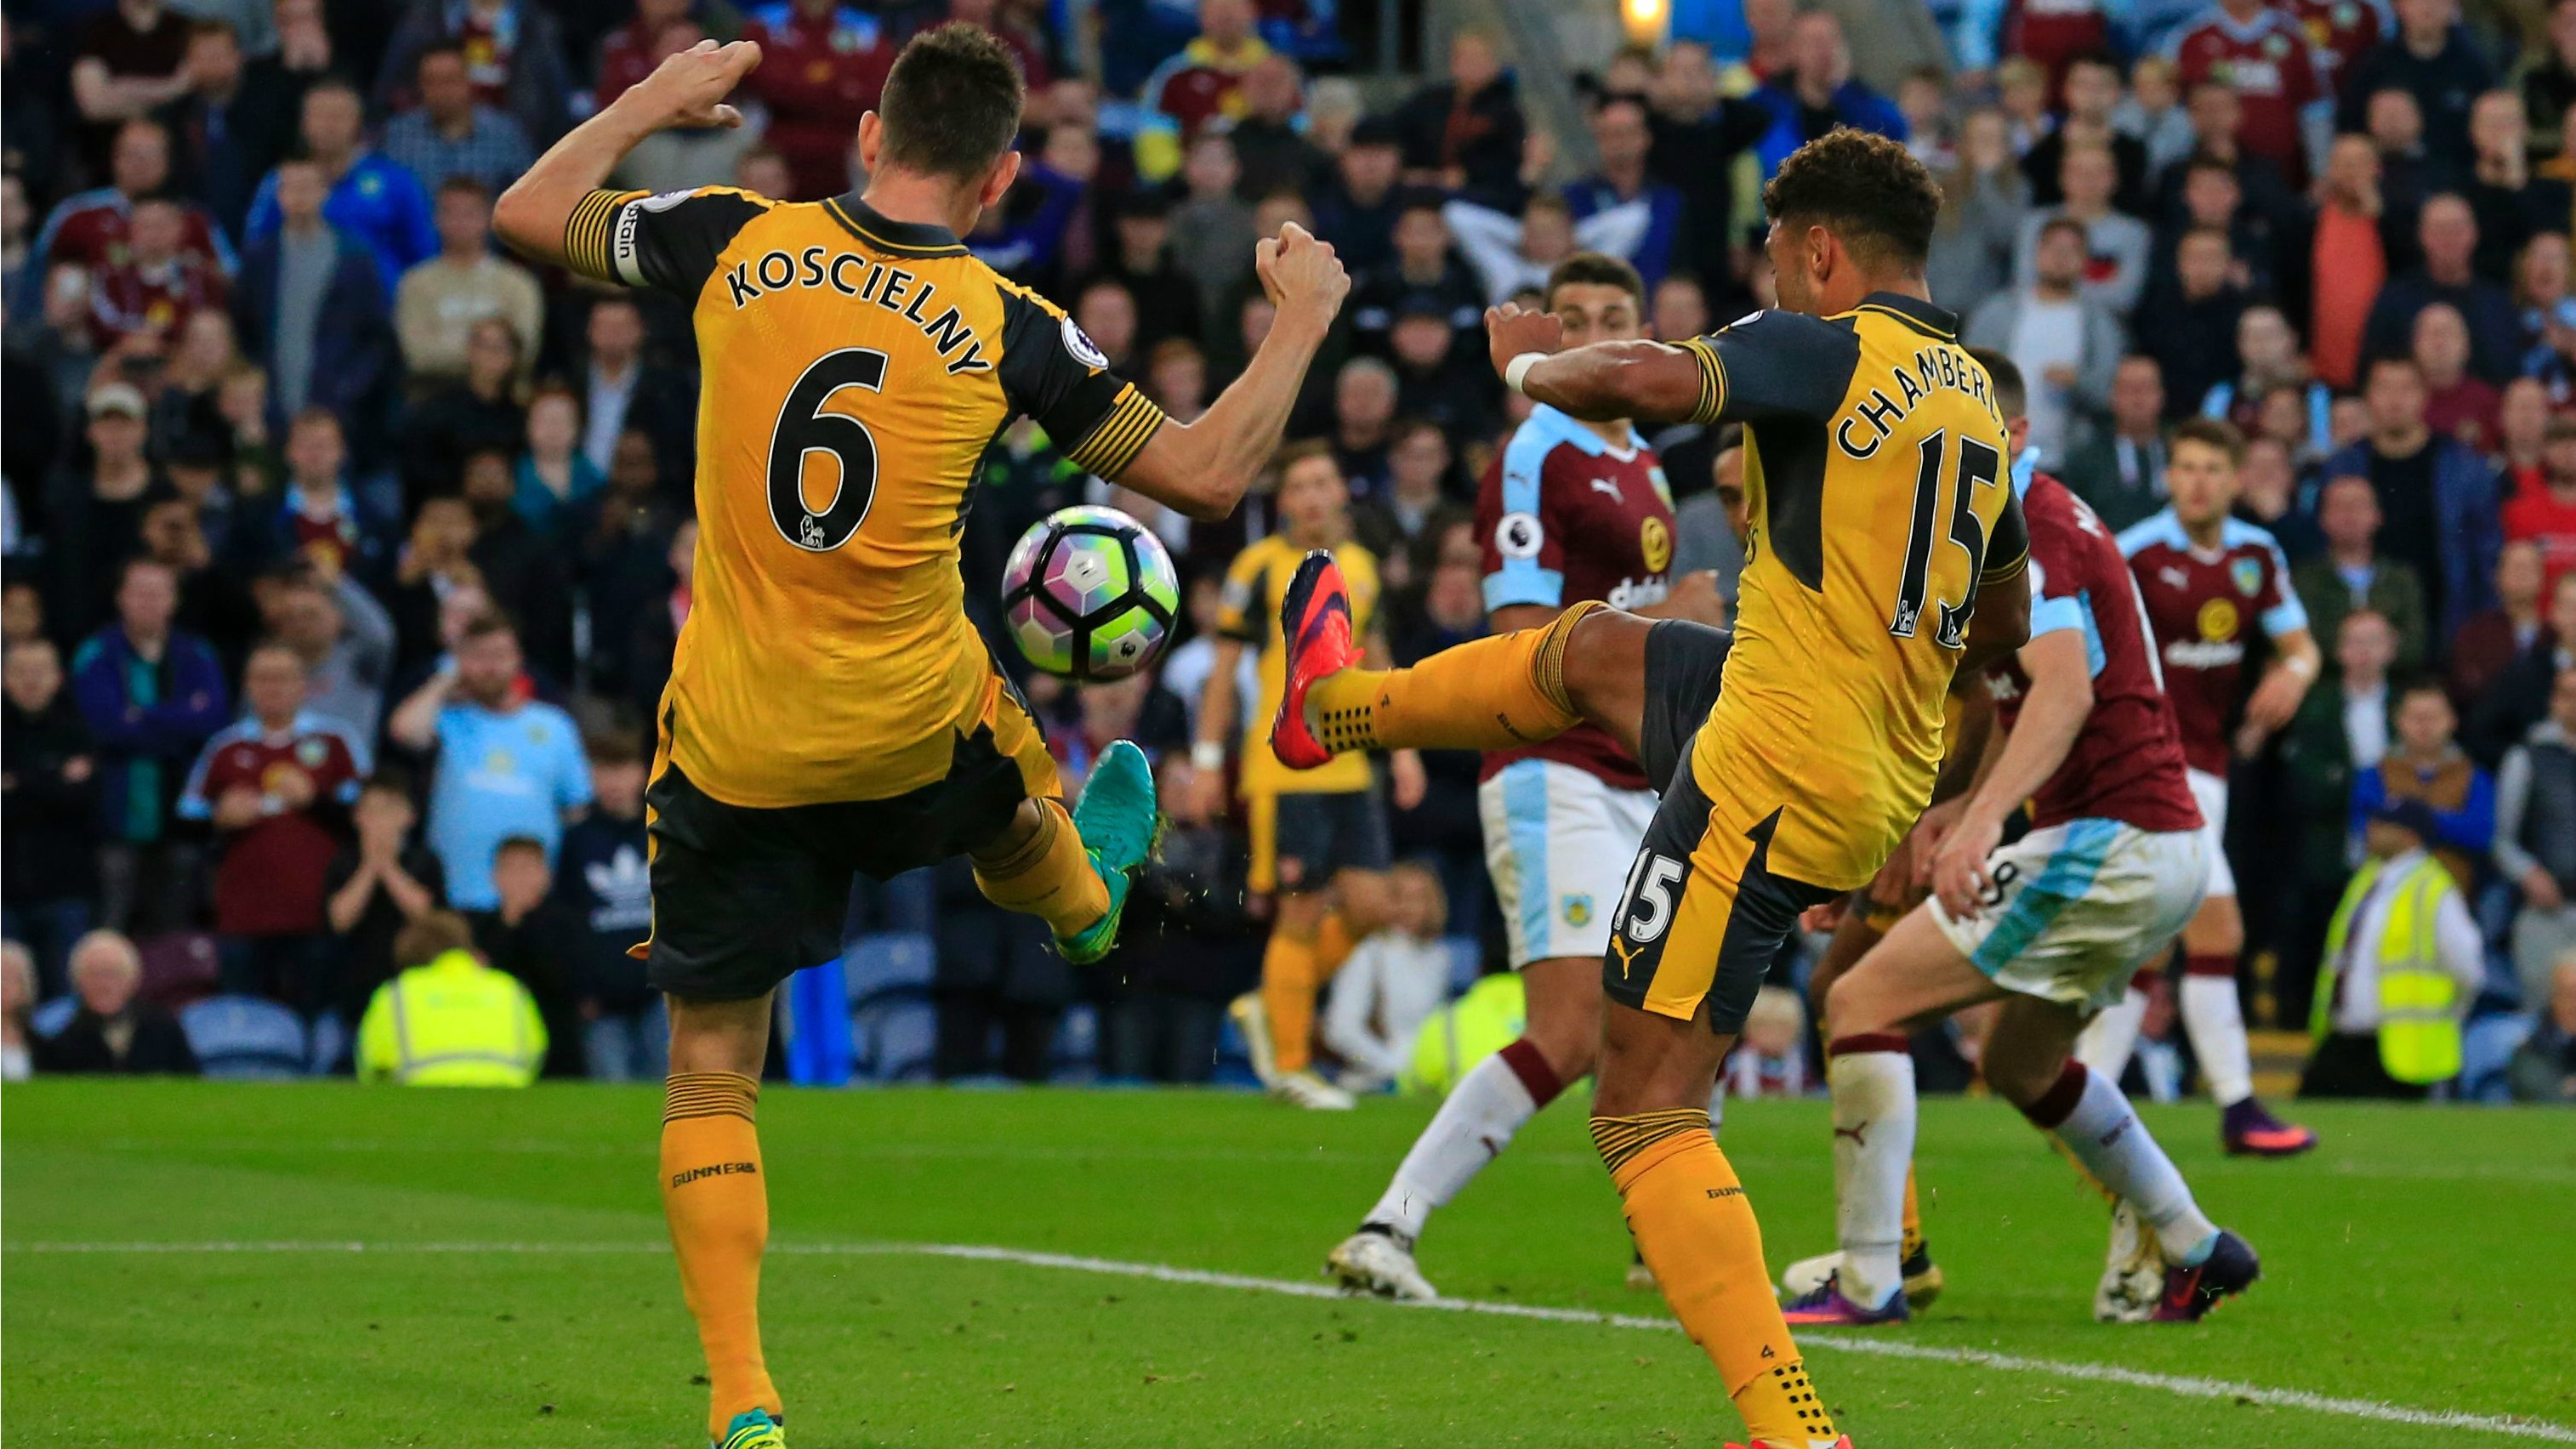 This Arsenal last-minute game-winner was fantastically ugly